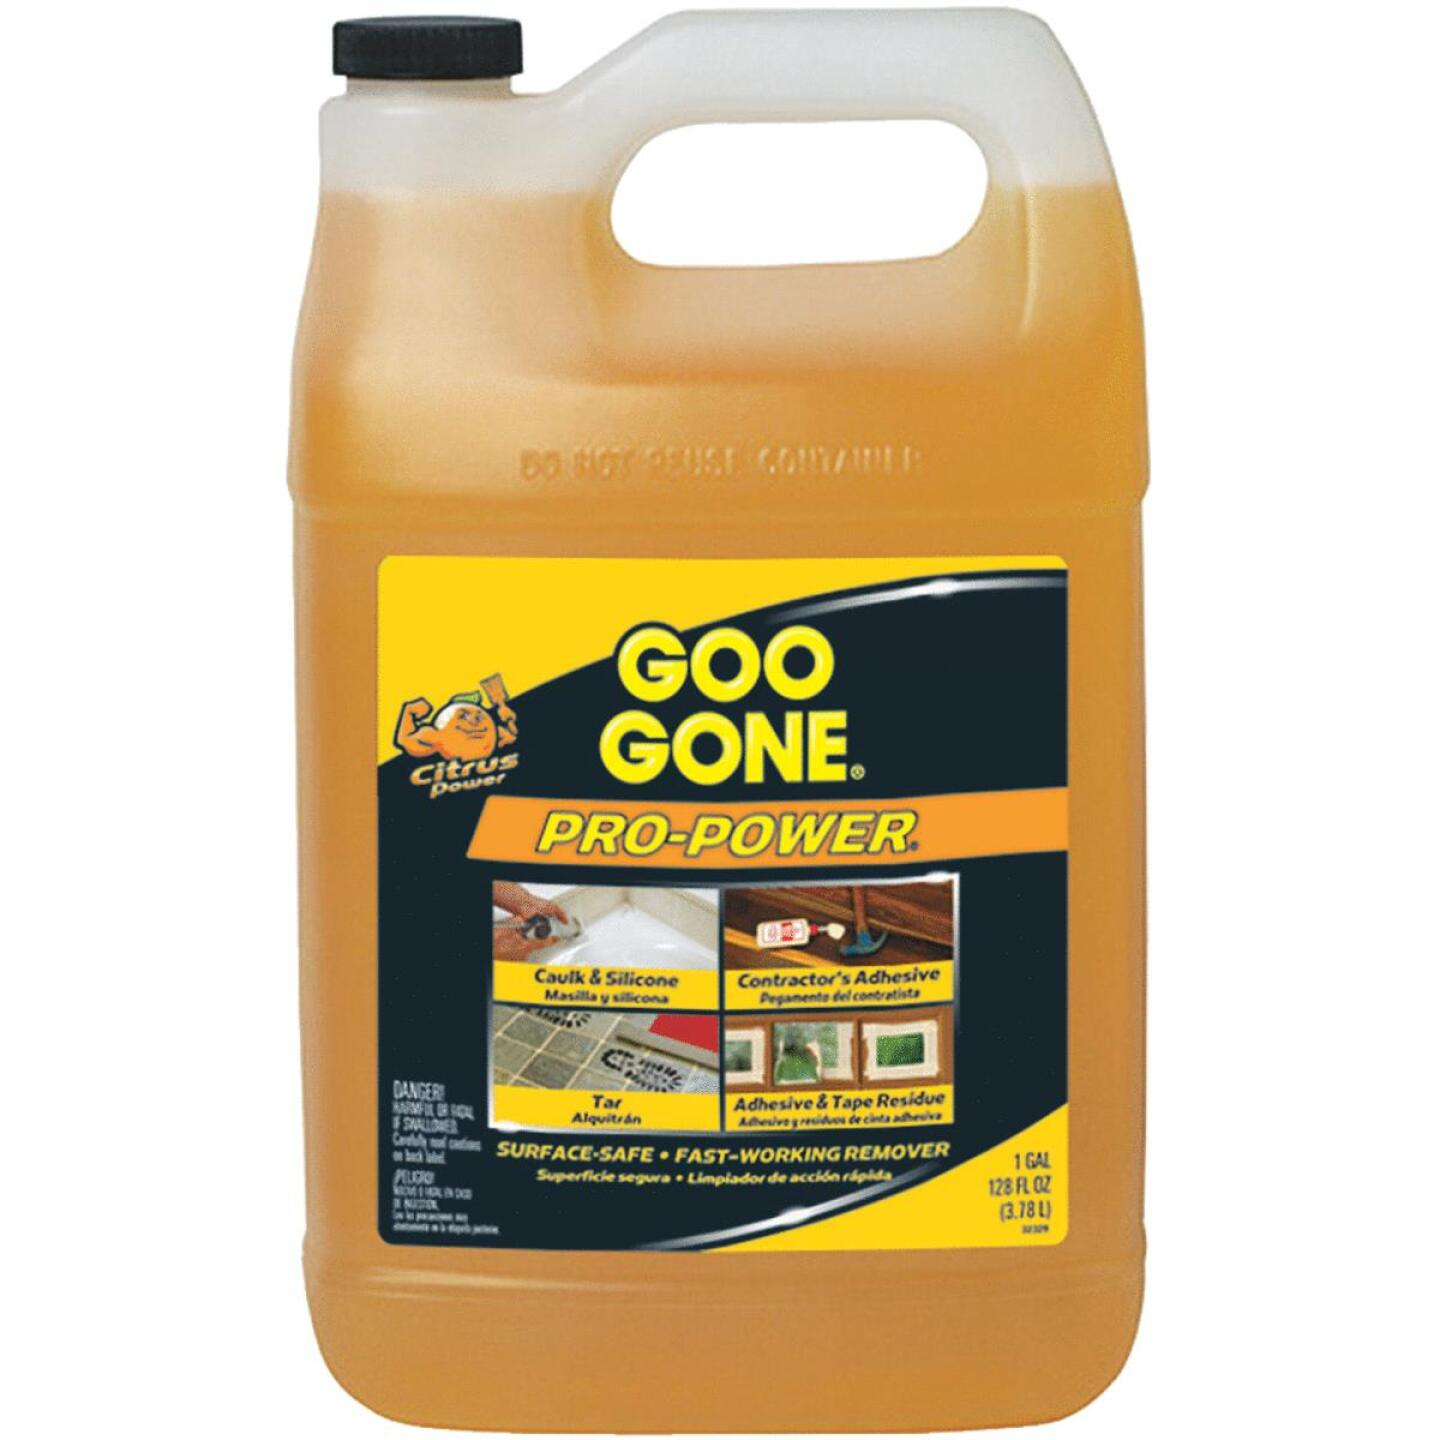 Goo Gone 1 Gal. Pro-Power Adhesive Remover Image 119